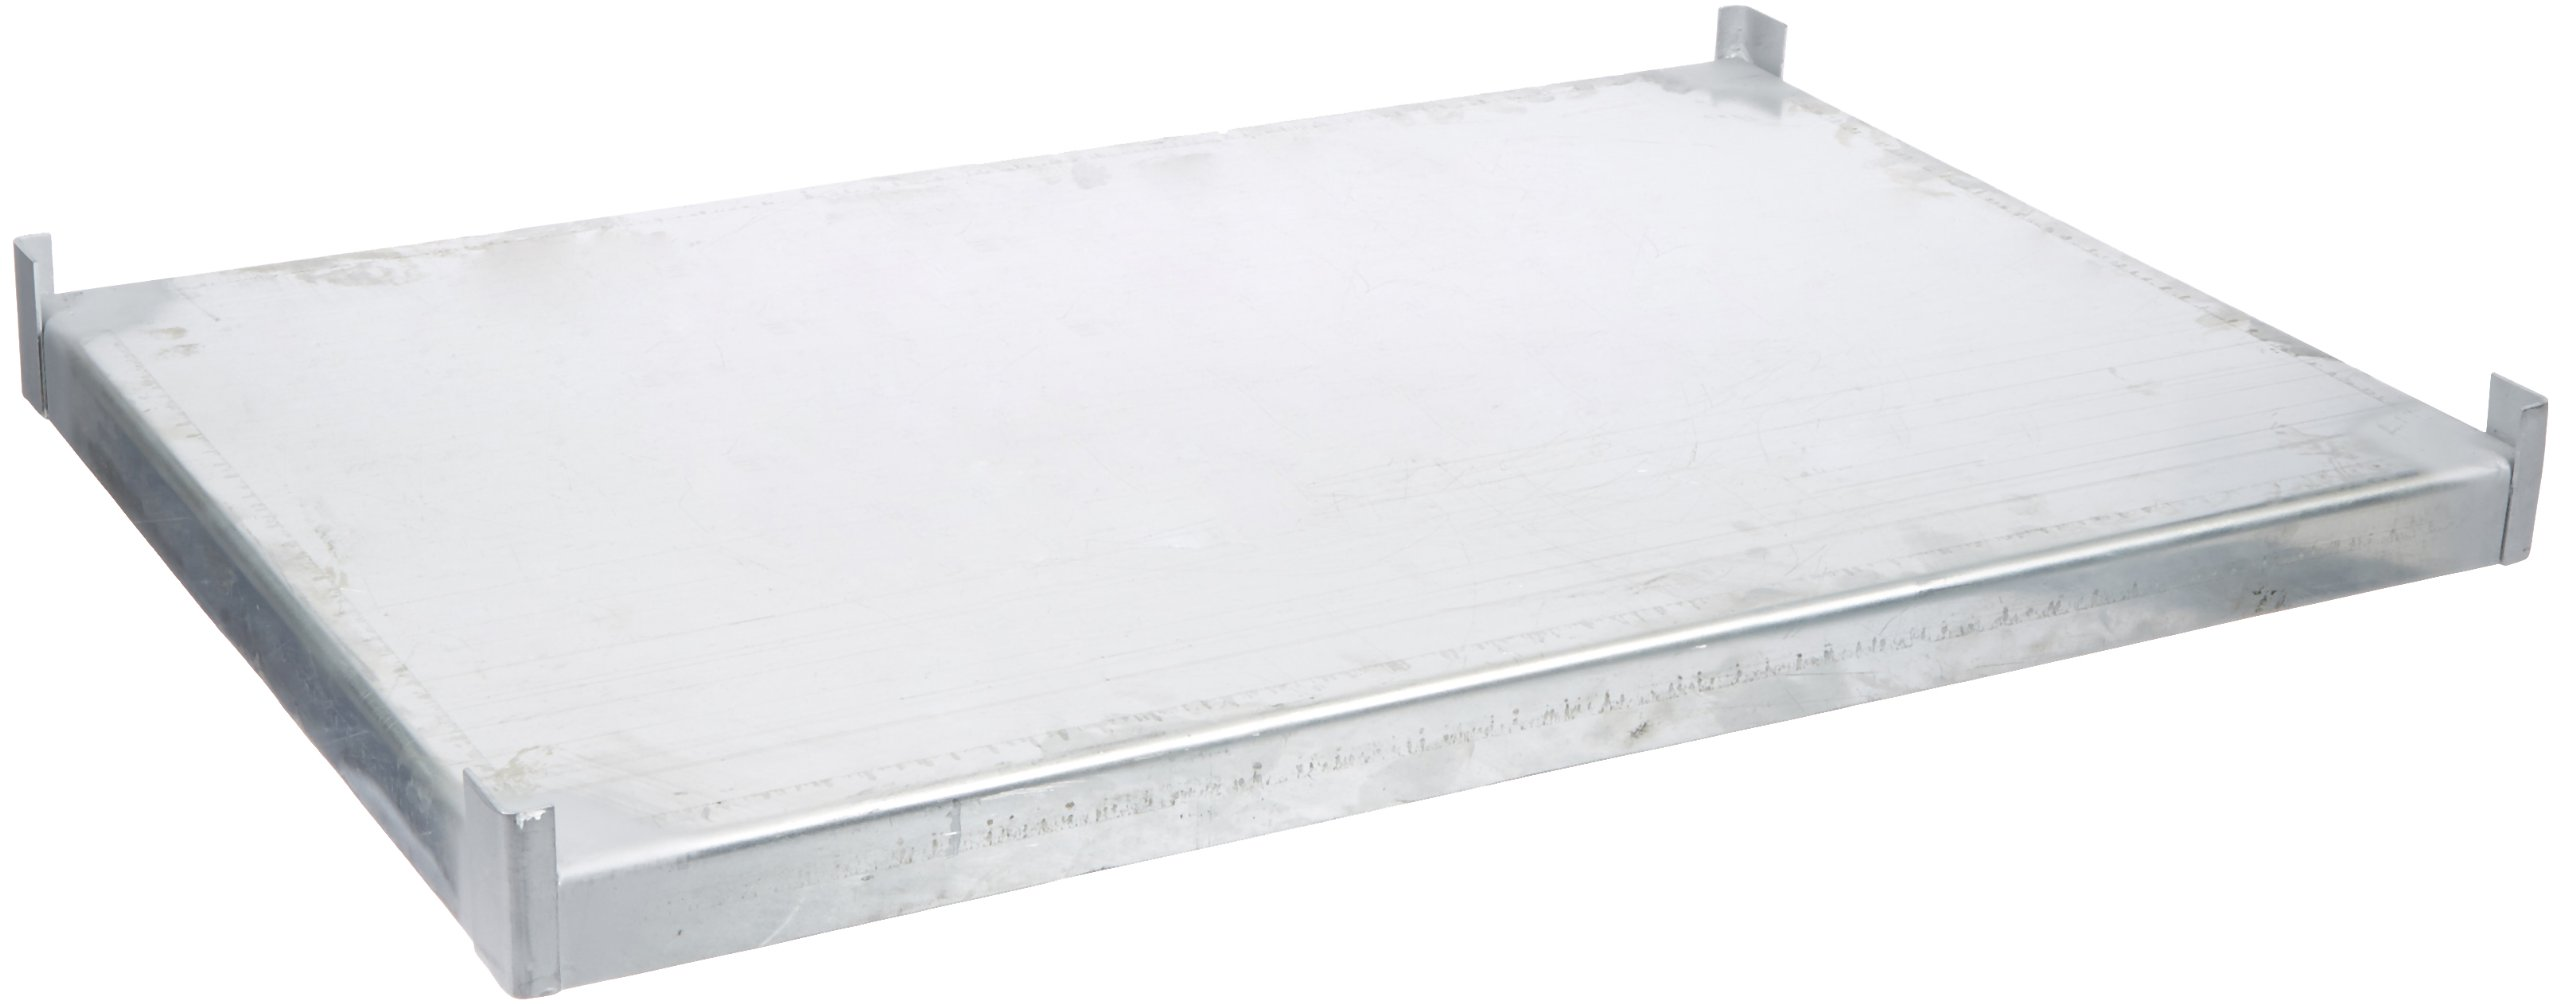 Denios K32-1110 Galvanized Steel Extra Shelf, For 24'' Deep Containment Shelving